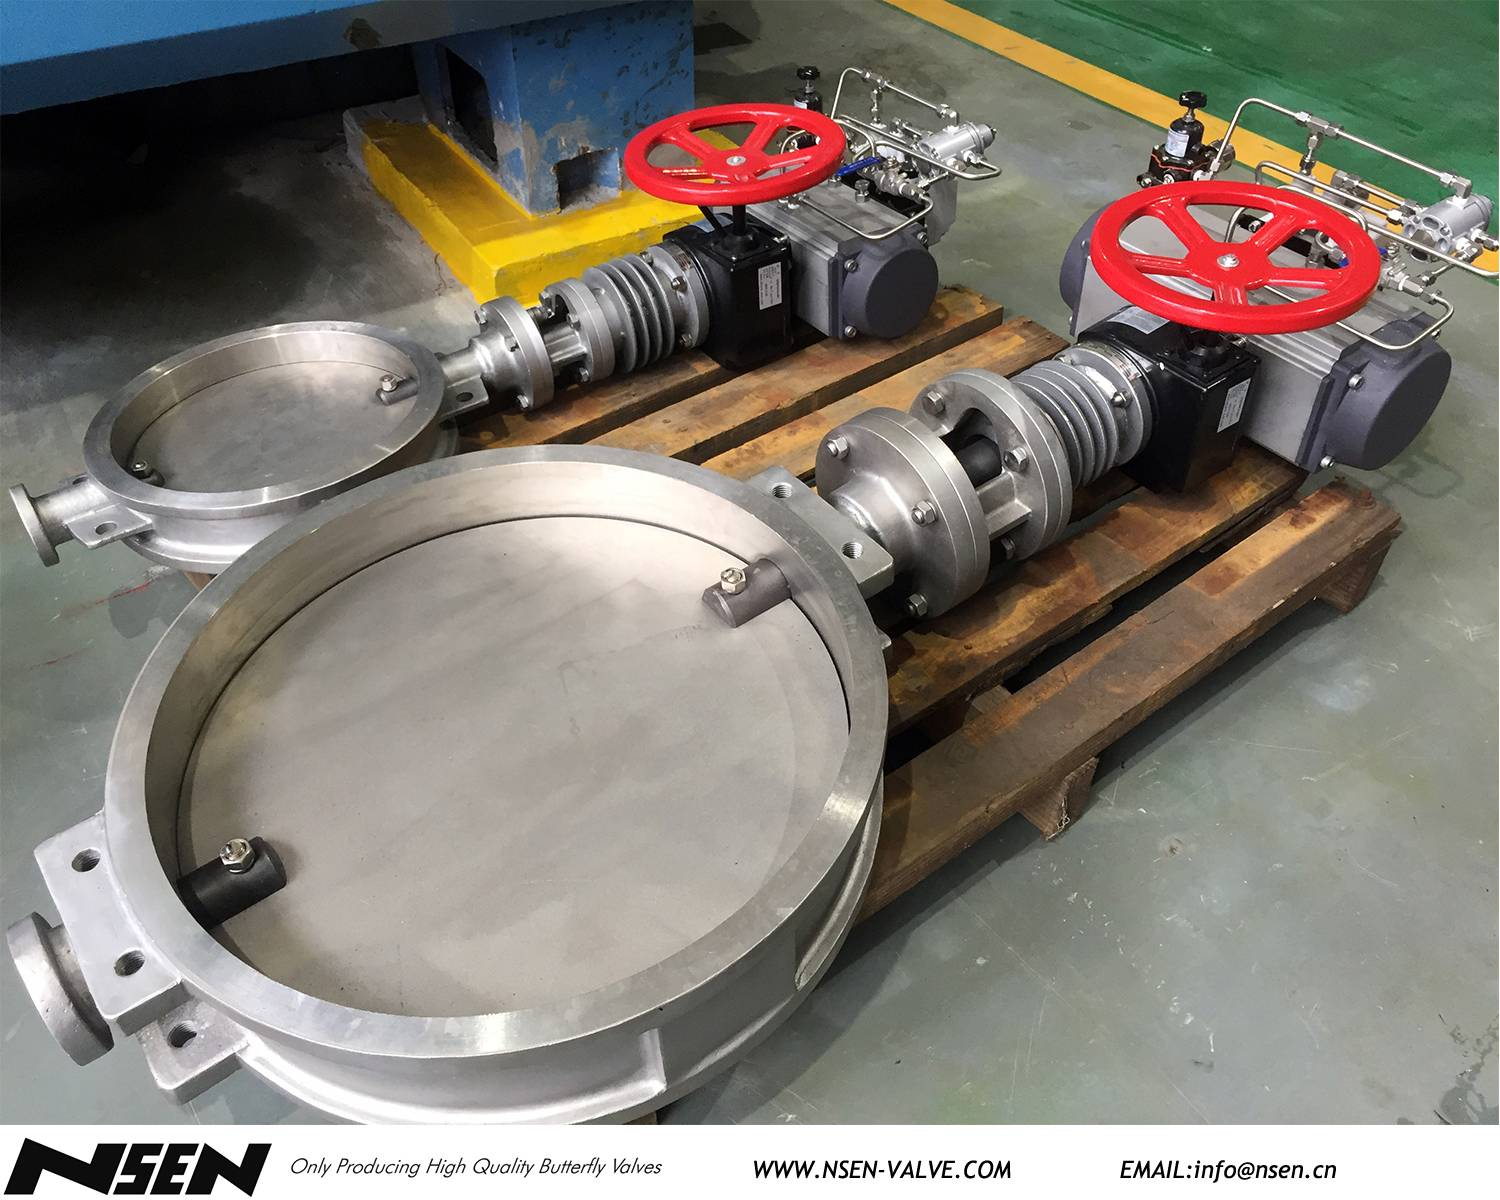 Pneumatic operated stainless steel damper with cooling fin